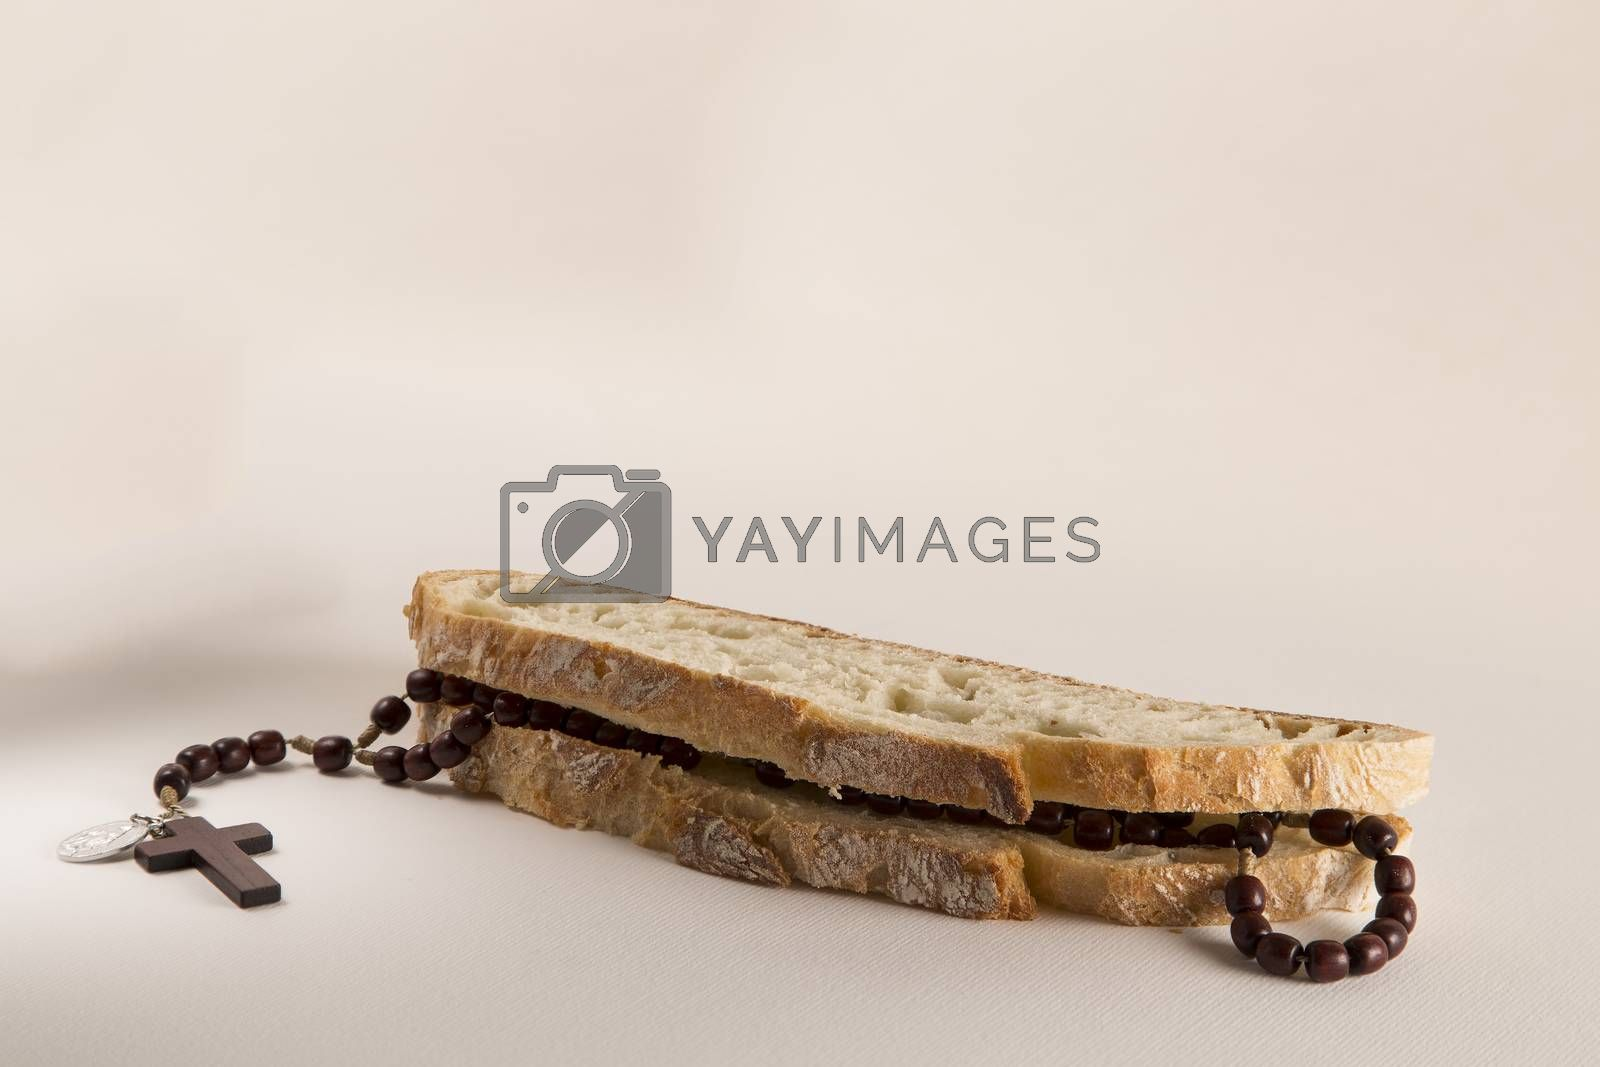 Italian bread and Holy Rosary beads necklace